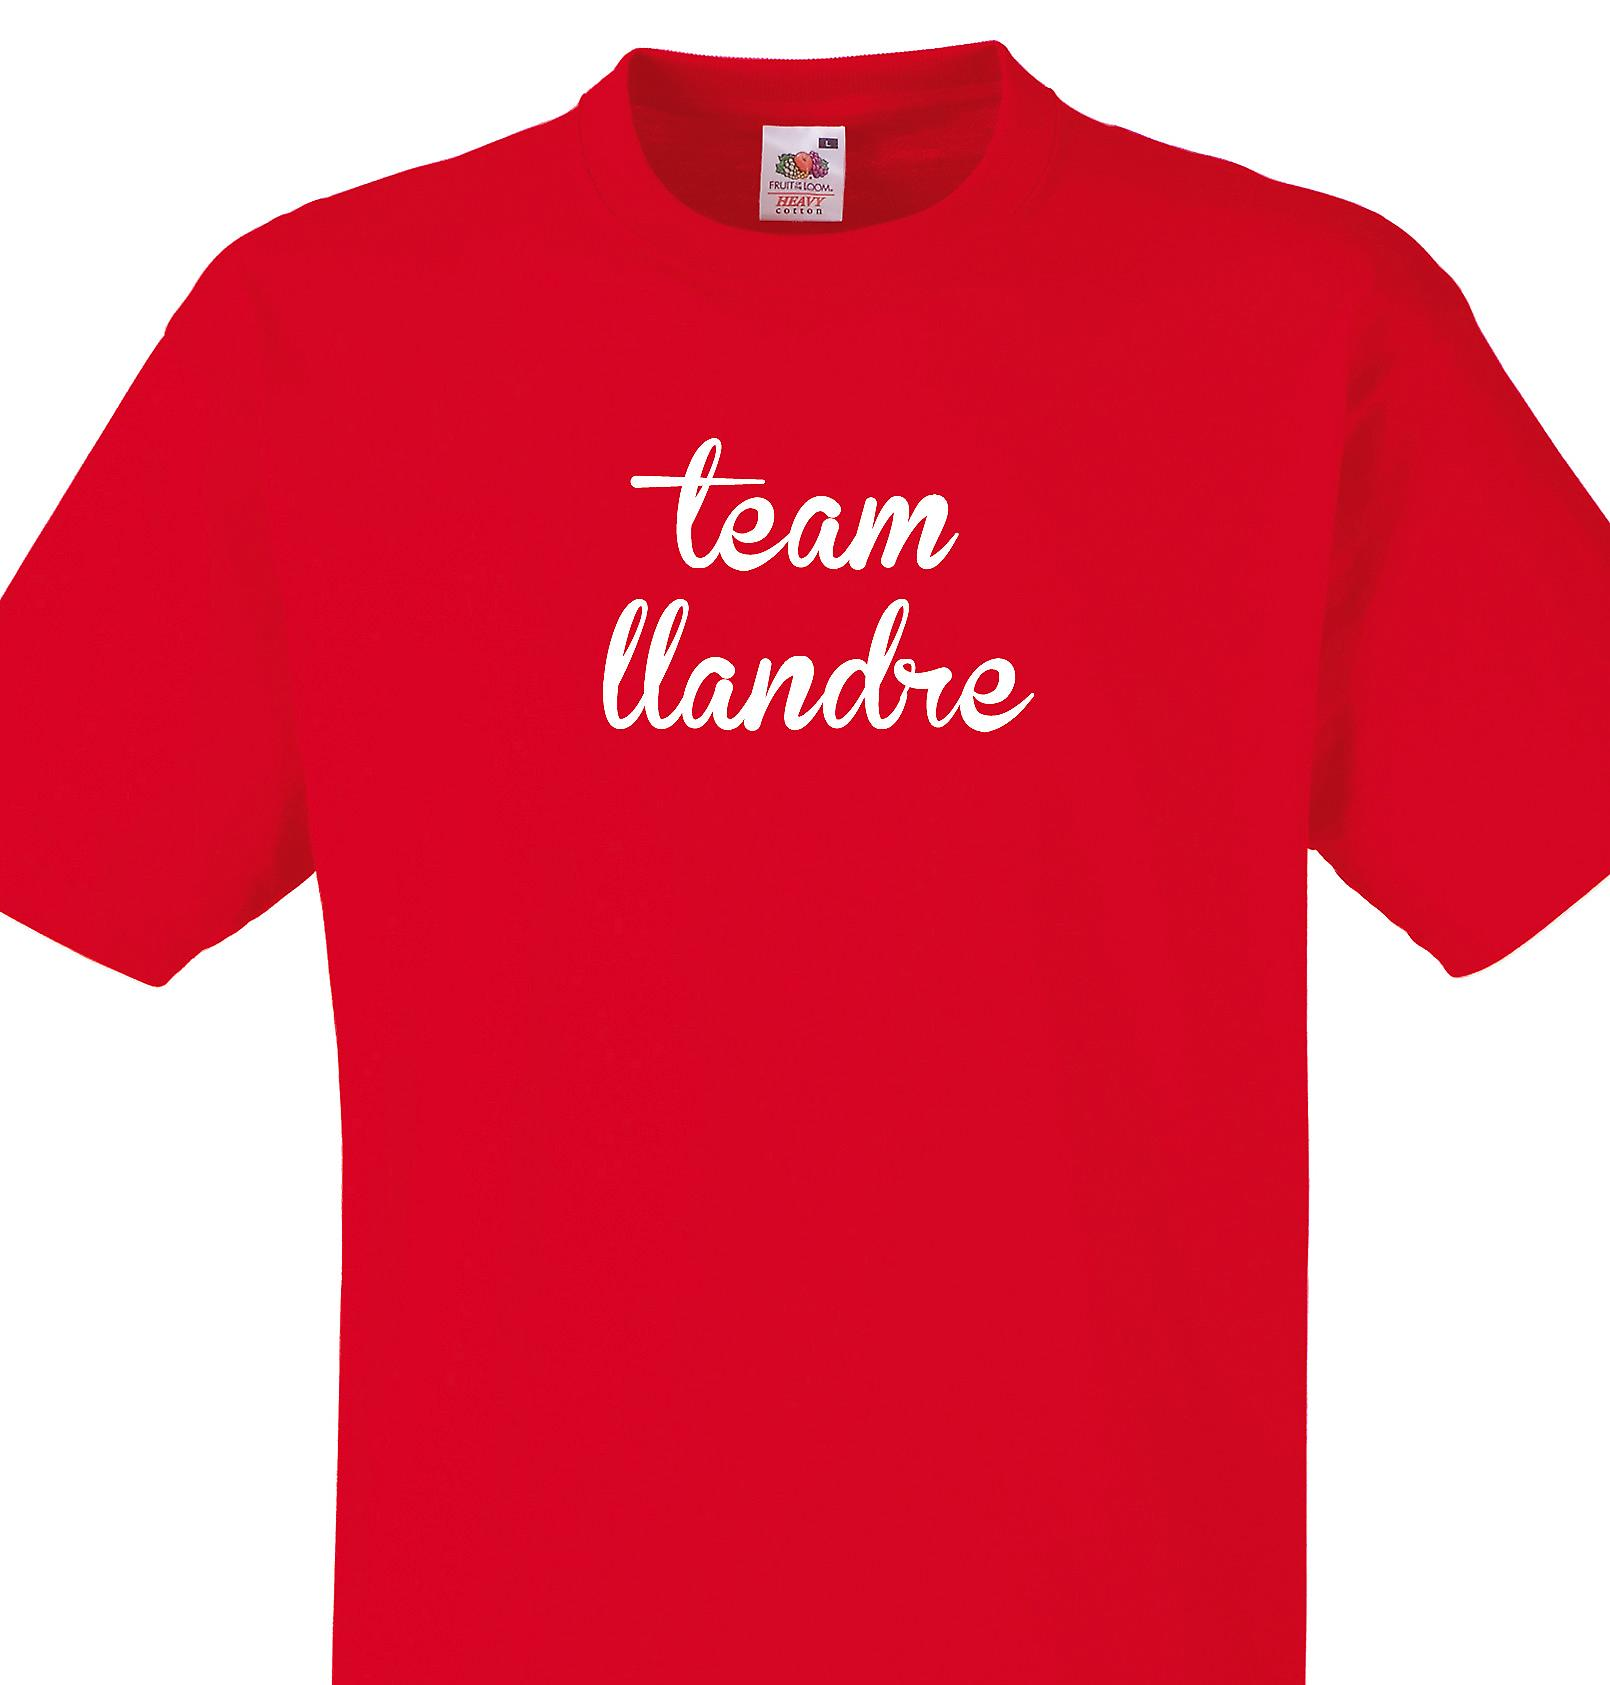 Team Llandre Red T shirt